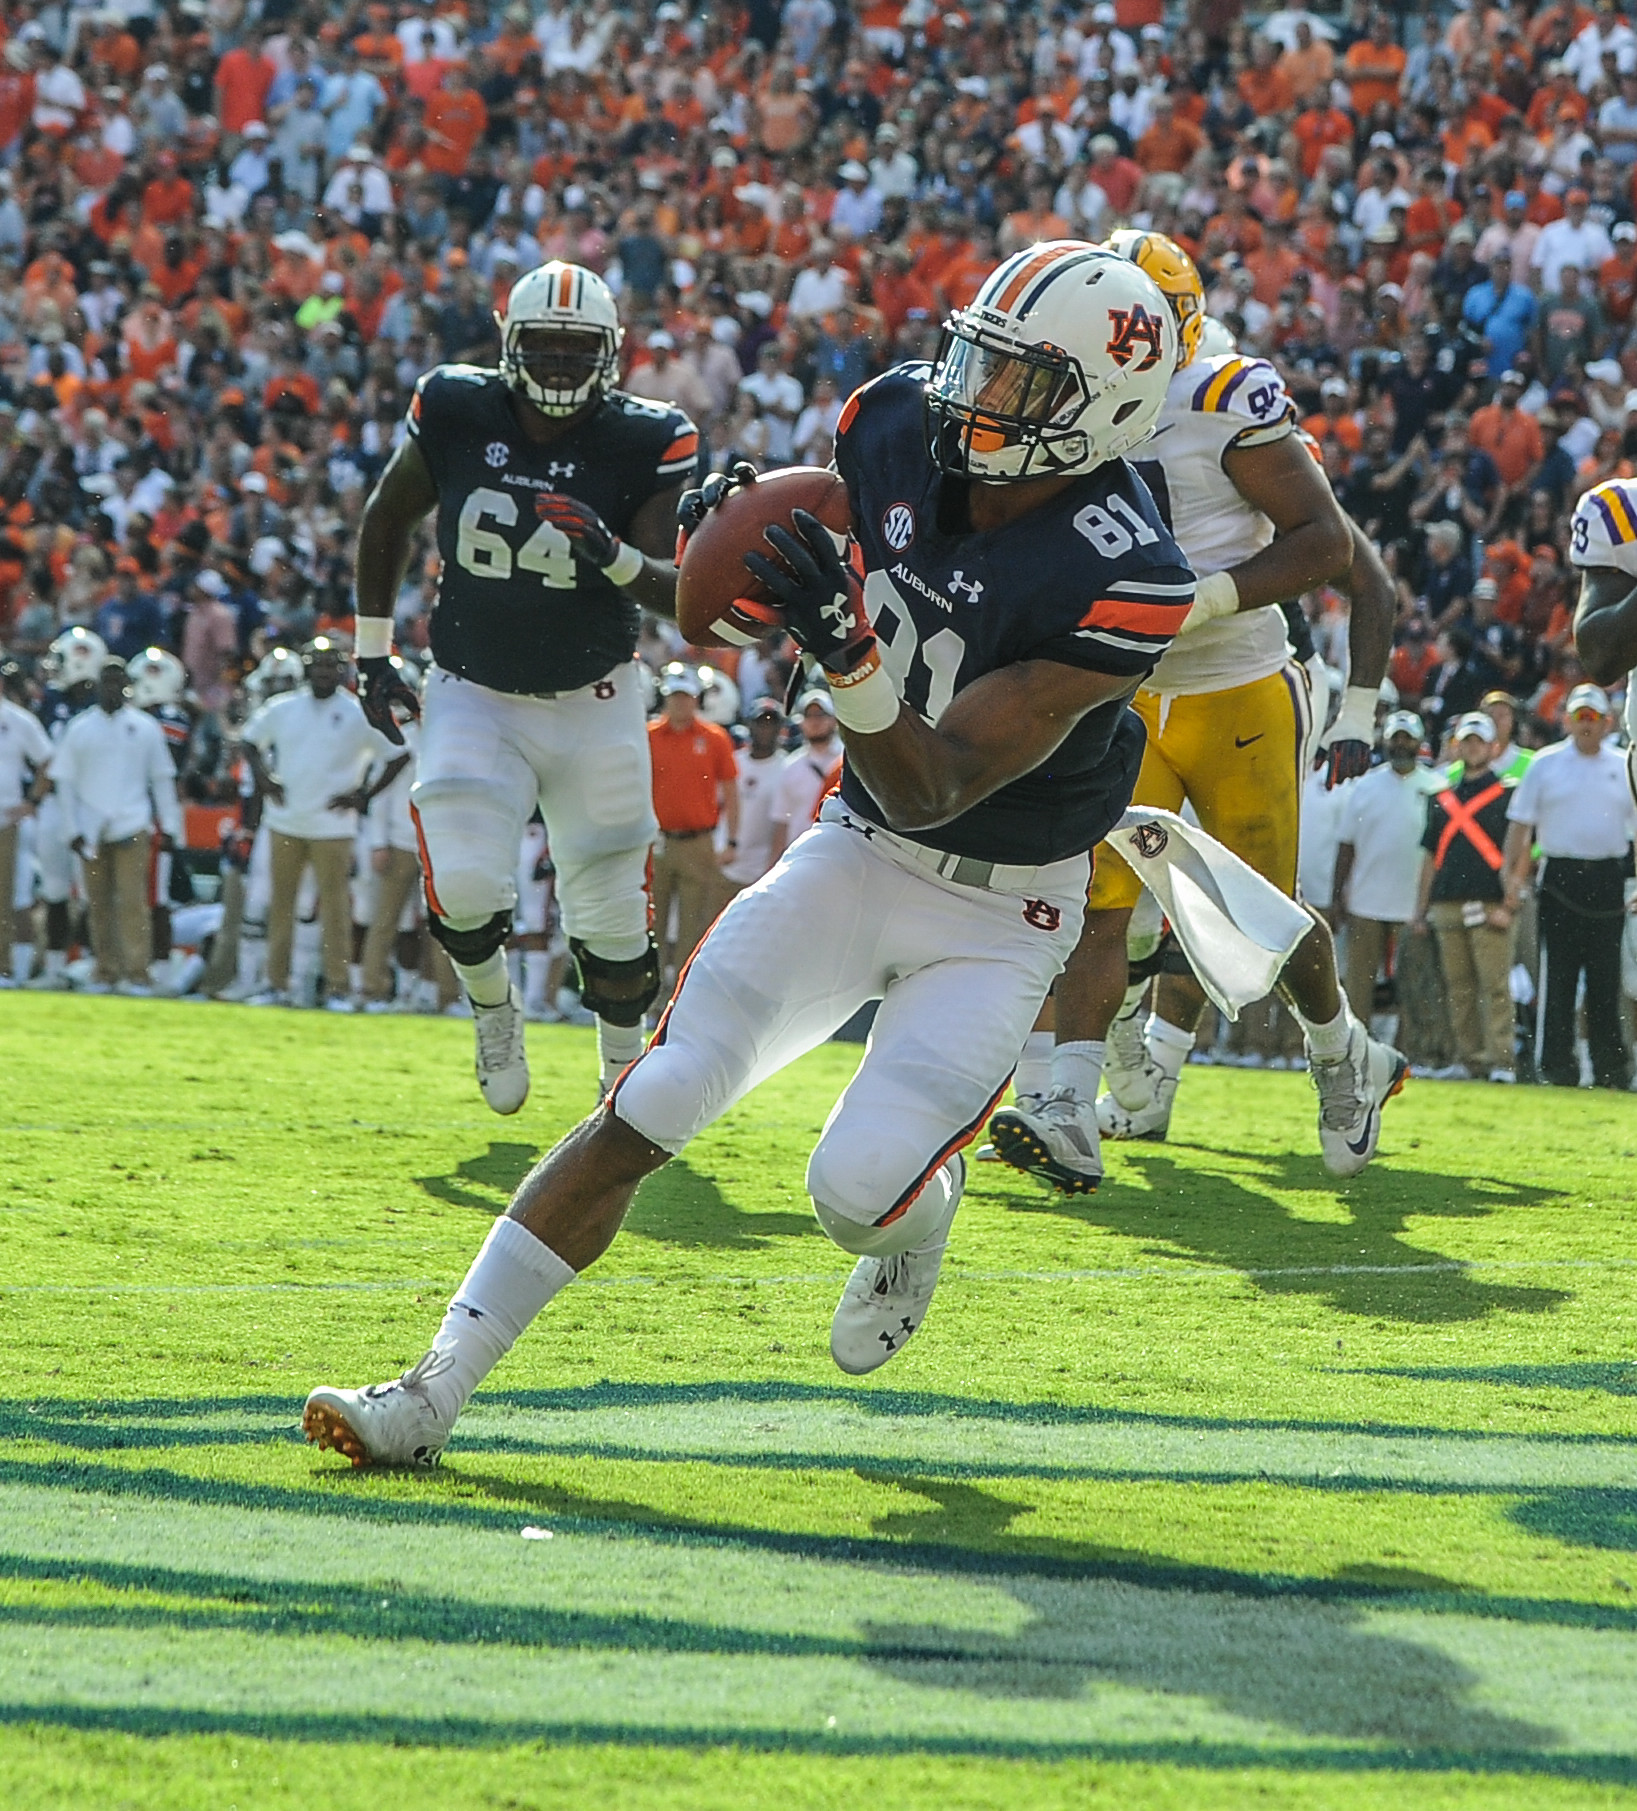 Auburn Tigers wide receiver Darius Slayton (81) catches a touchdown pass during the second half of Saturday's game, at Jordan Hare Stadium in Auburn. (Contributed by Jeff Johnsey)